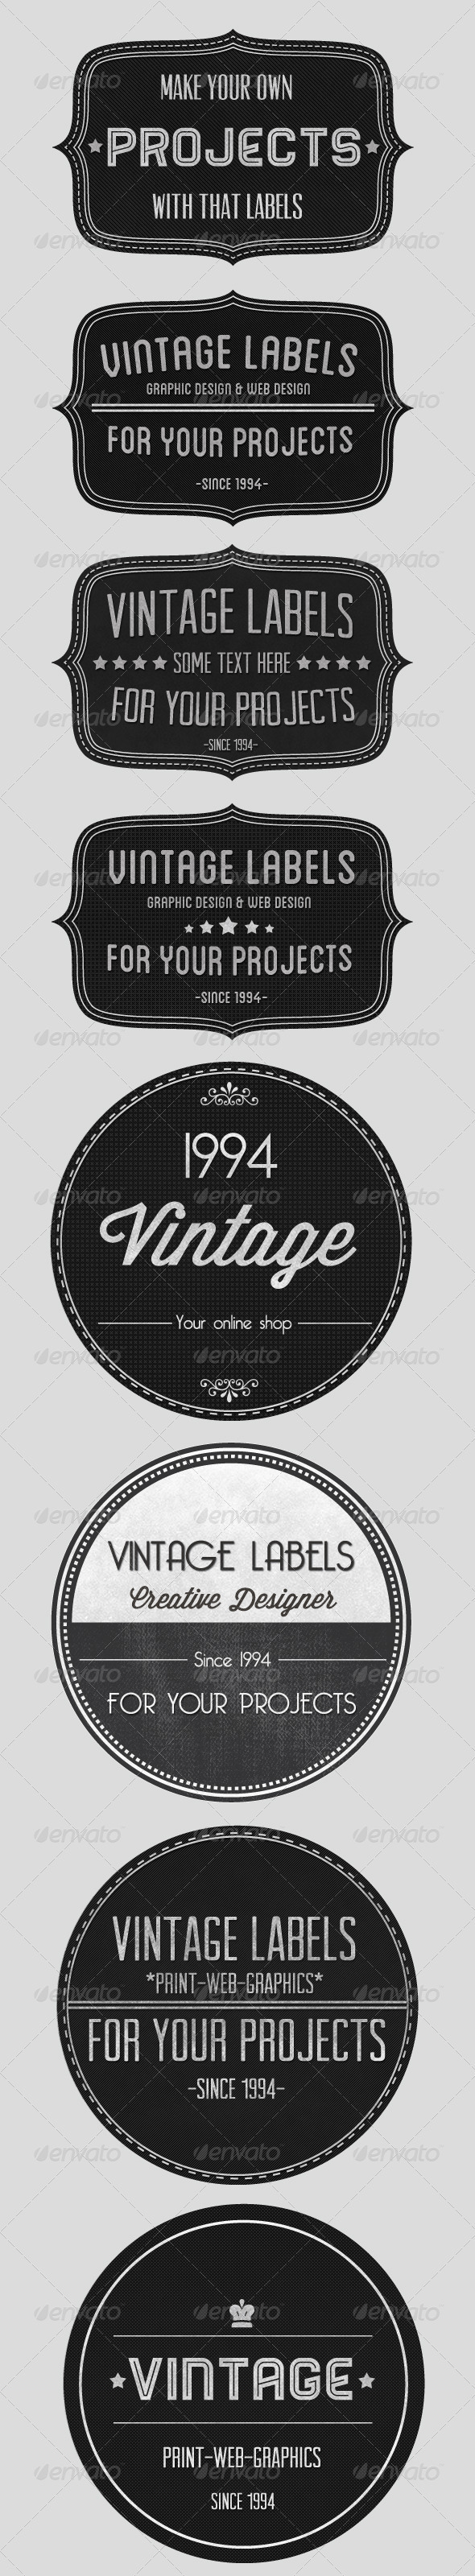 Vintage Badges Set - Badges & Stickers Web Elements